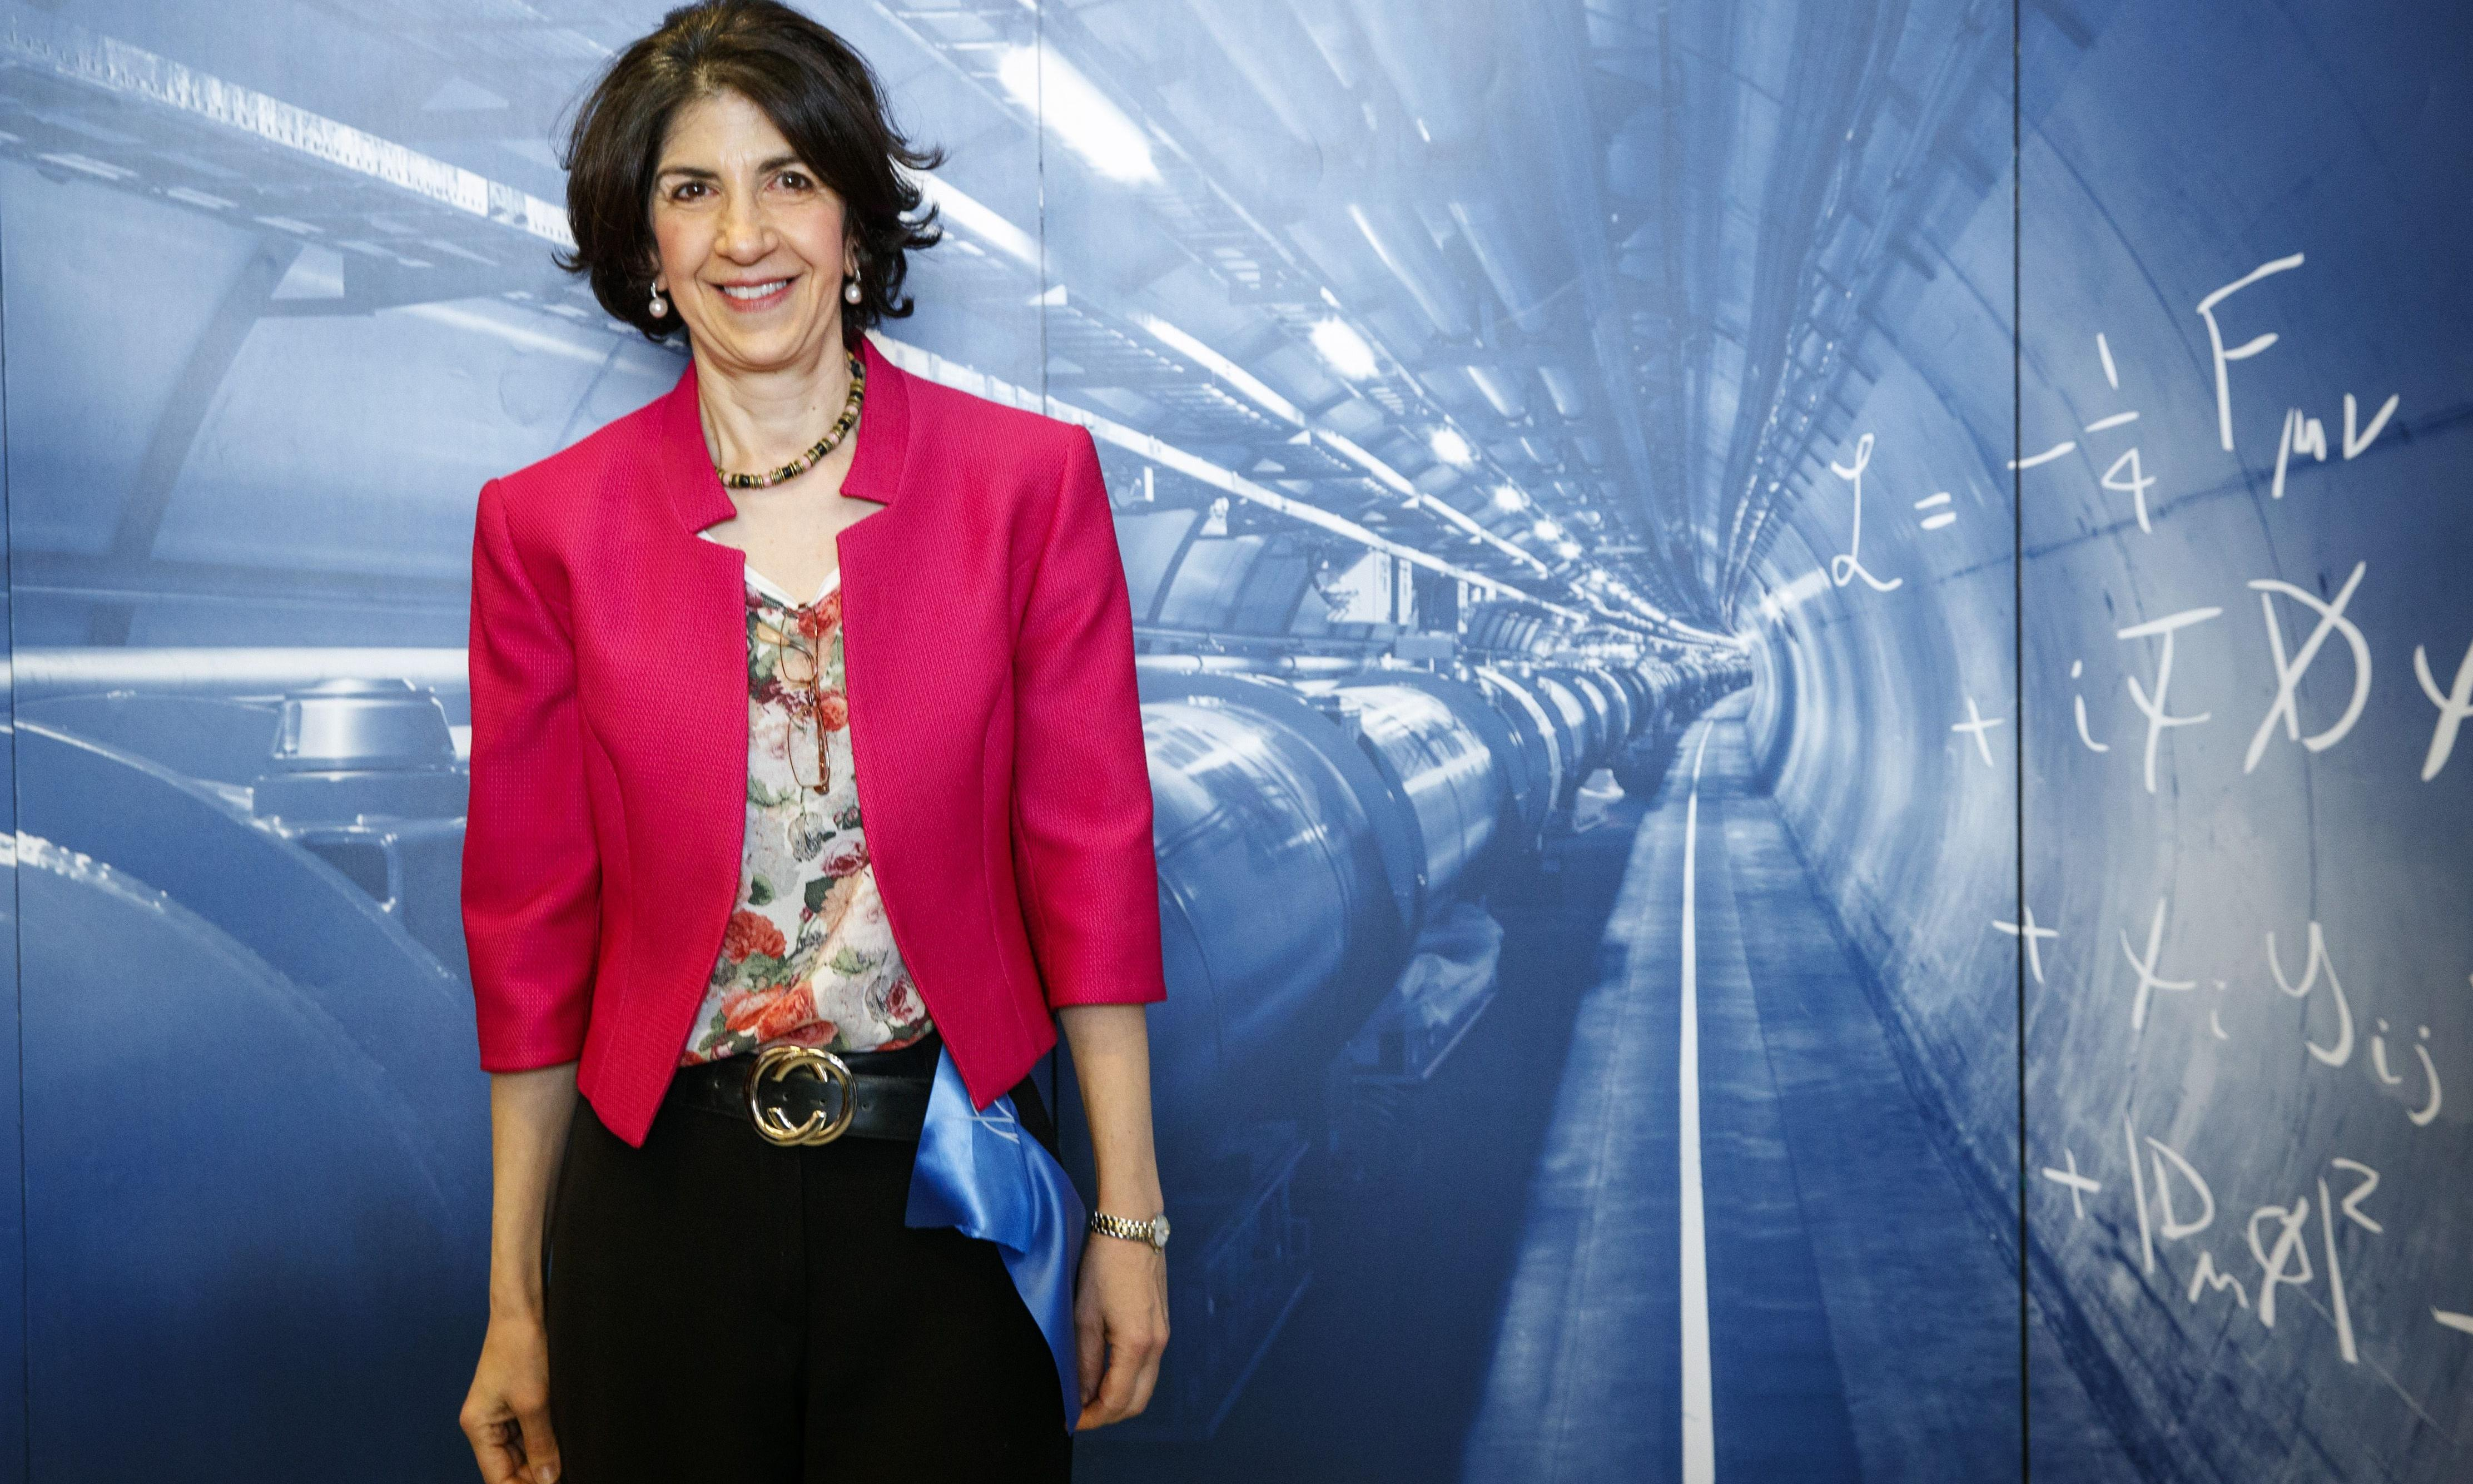 Fabiola Gianotti: 'There is nothing more rewarding than discovering a new particle'